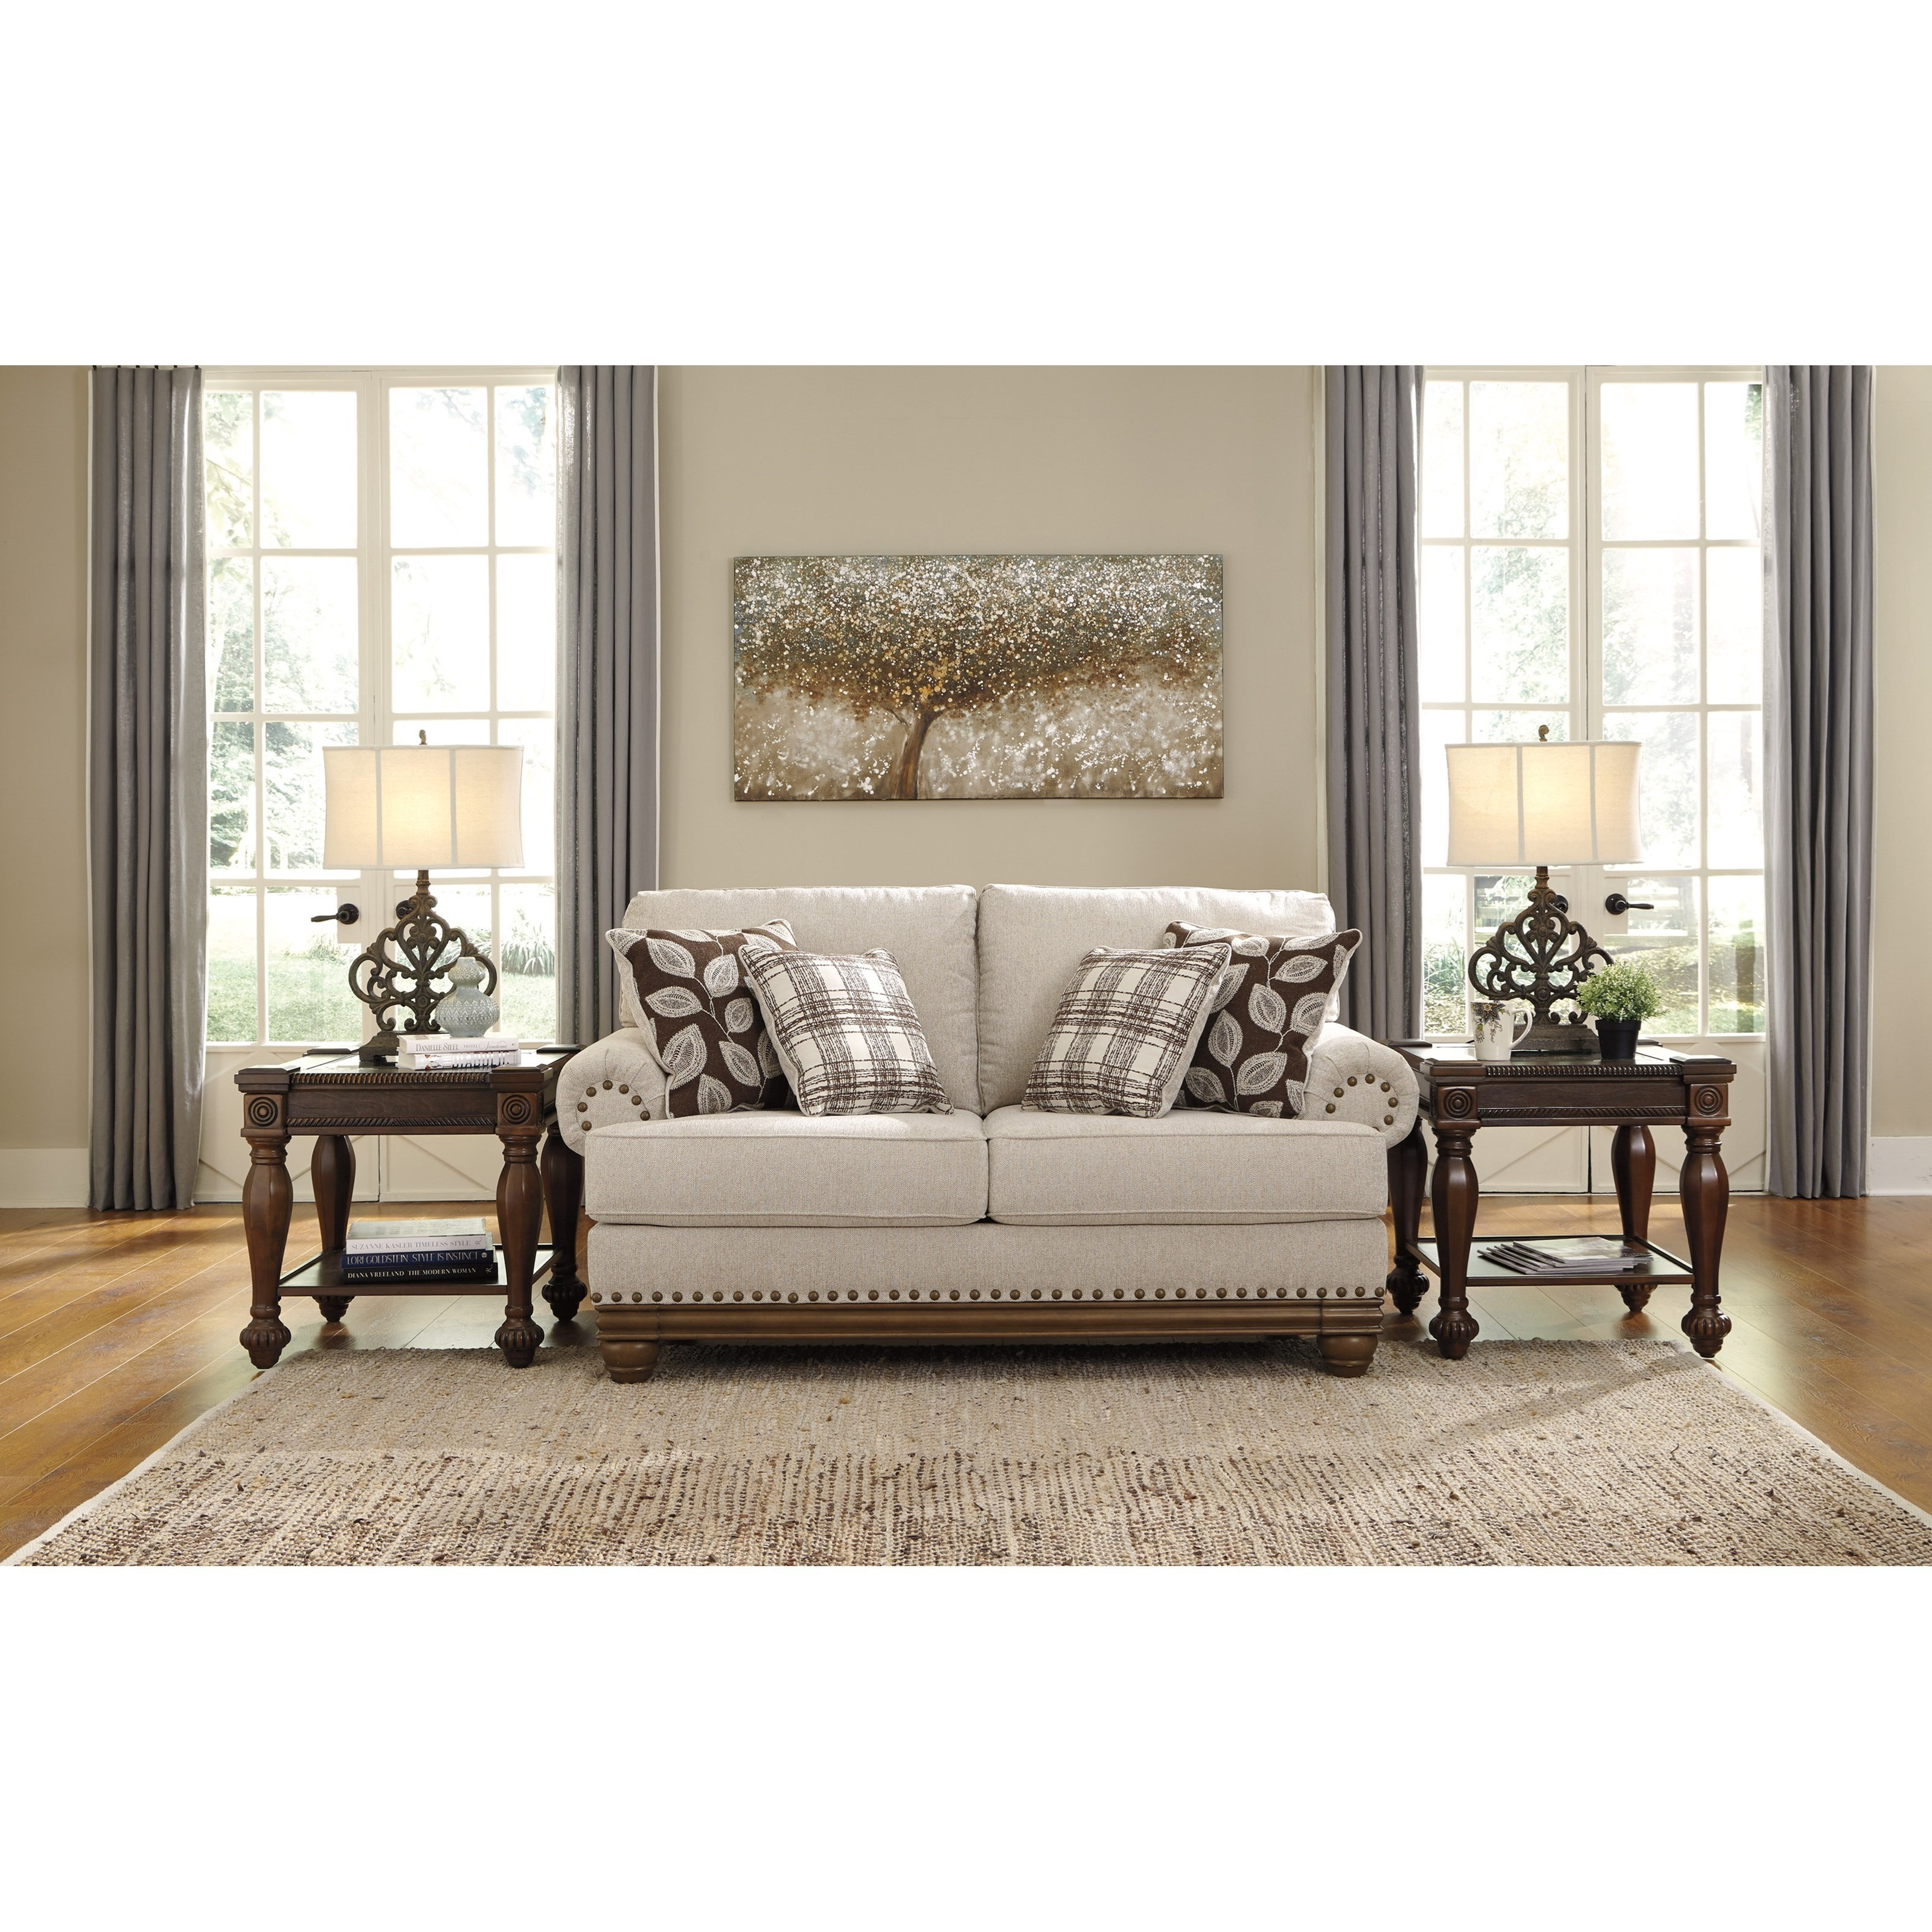 Signature Design By Ashley Harleson Transitional Love Seat